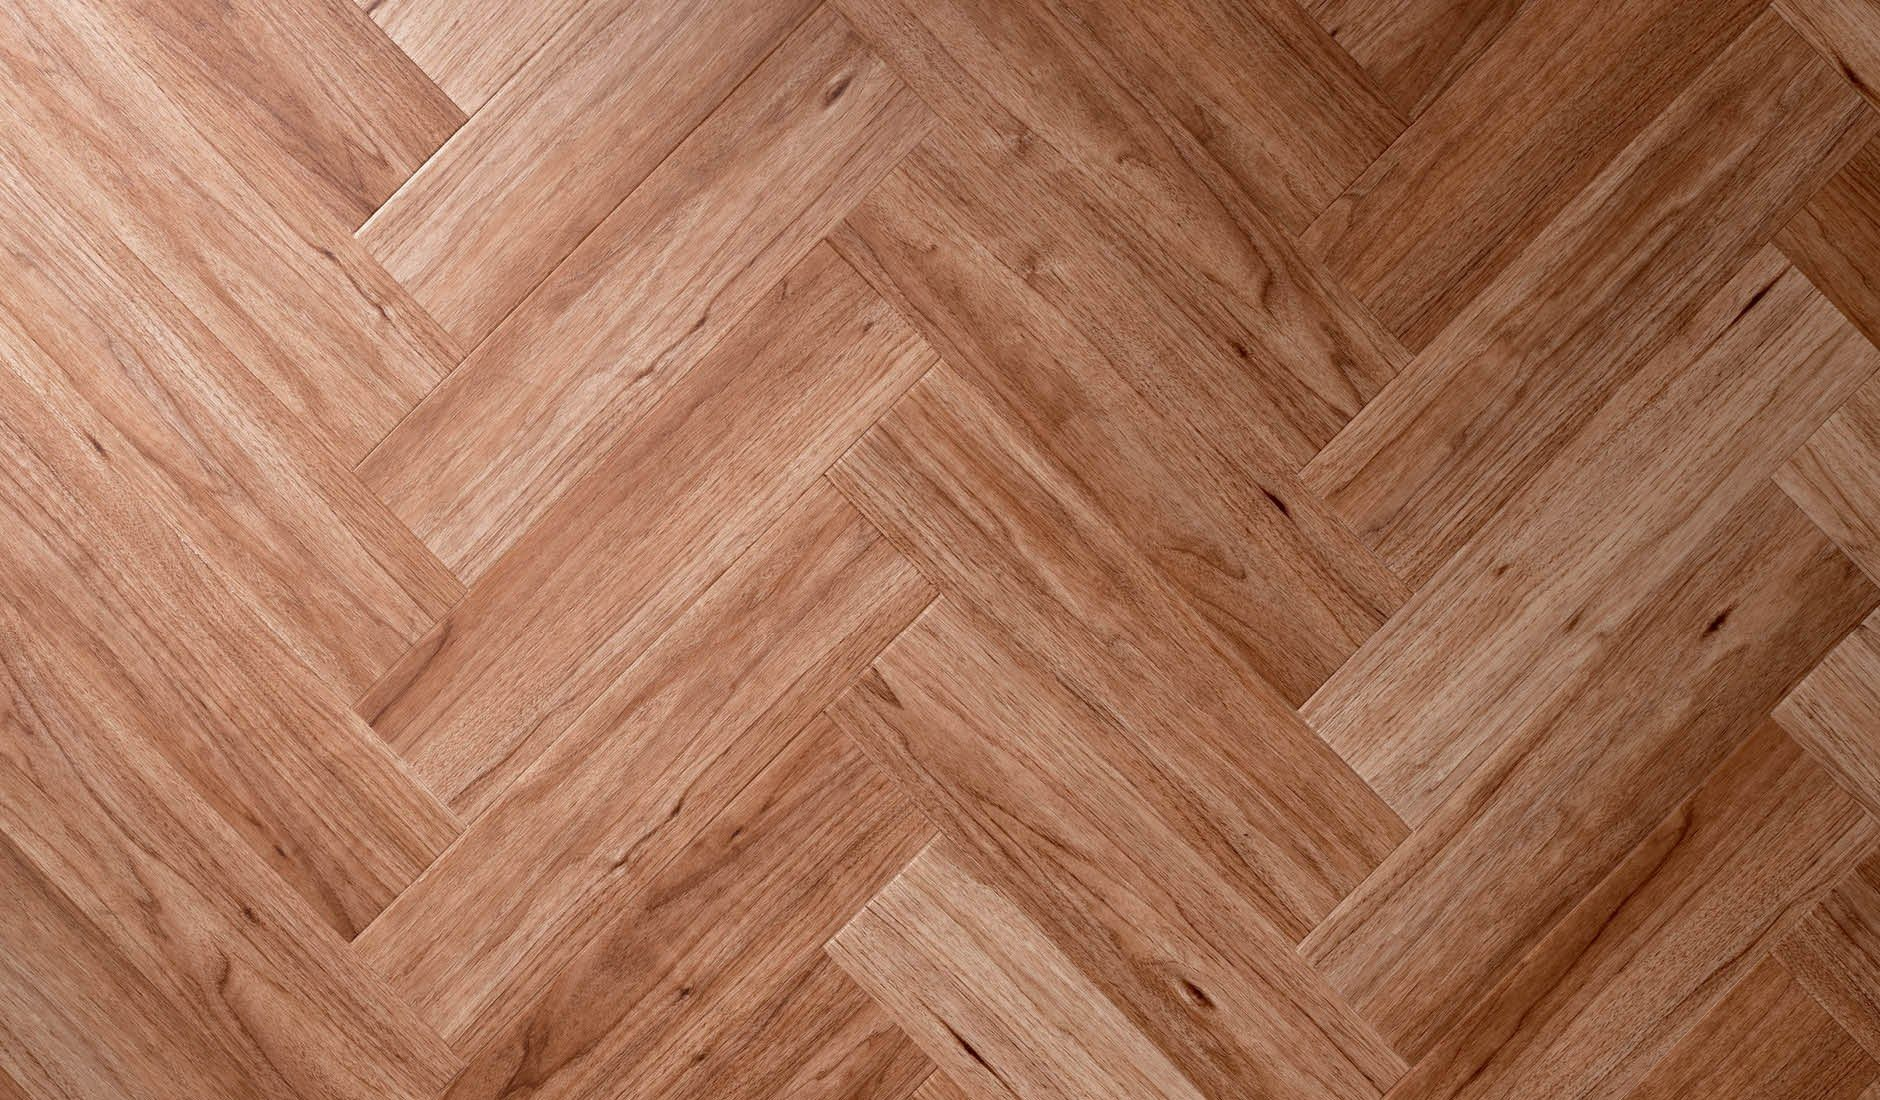 Alessano Natural Herringbone Oak Effect Laminate Flooring 1.39 m Pack |  Departments | DIY at B&Q